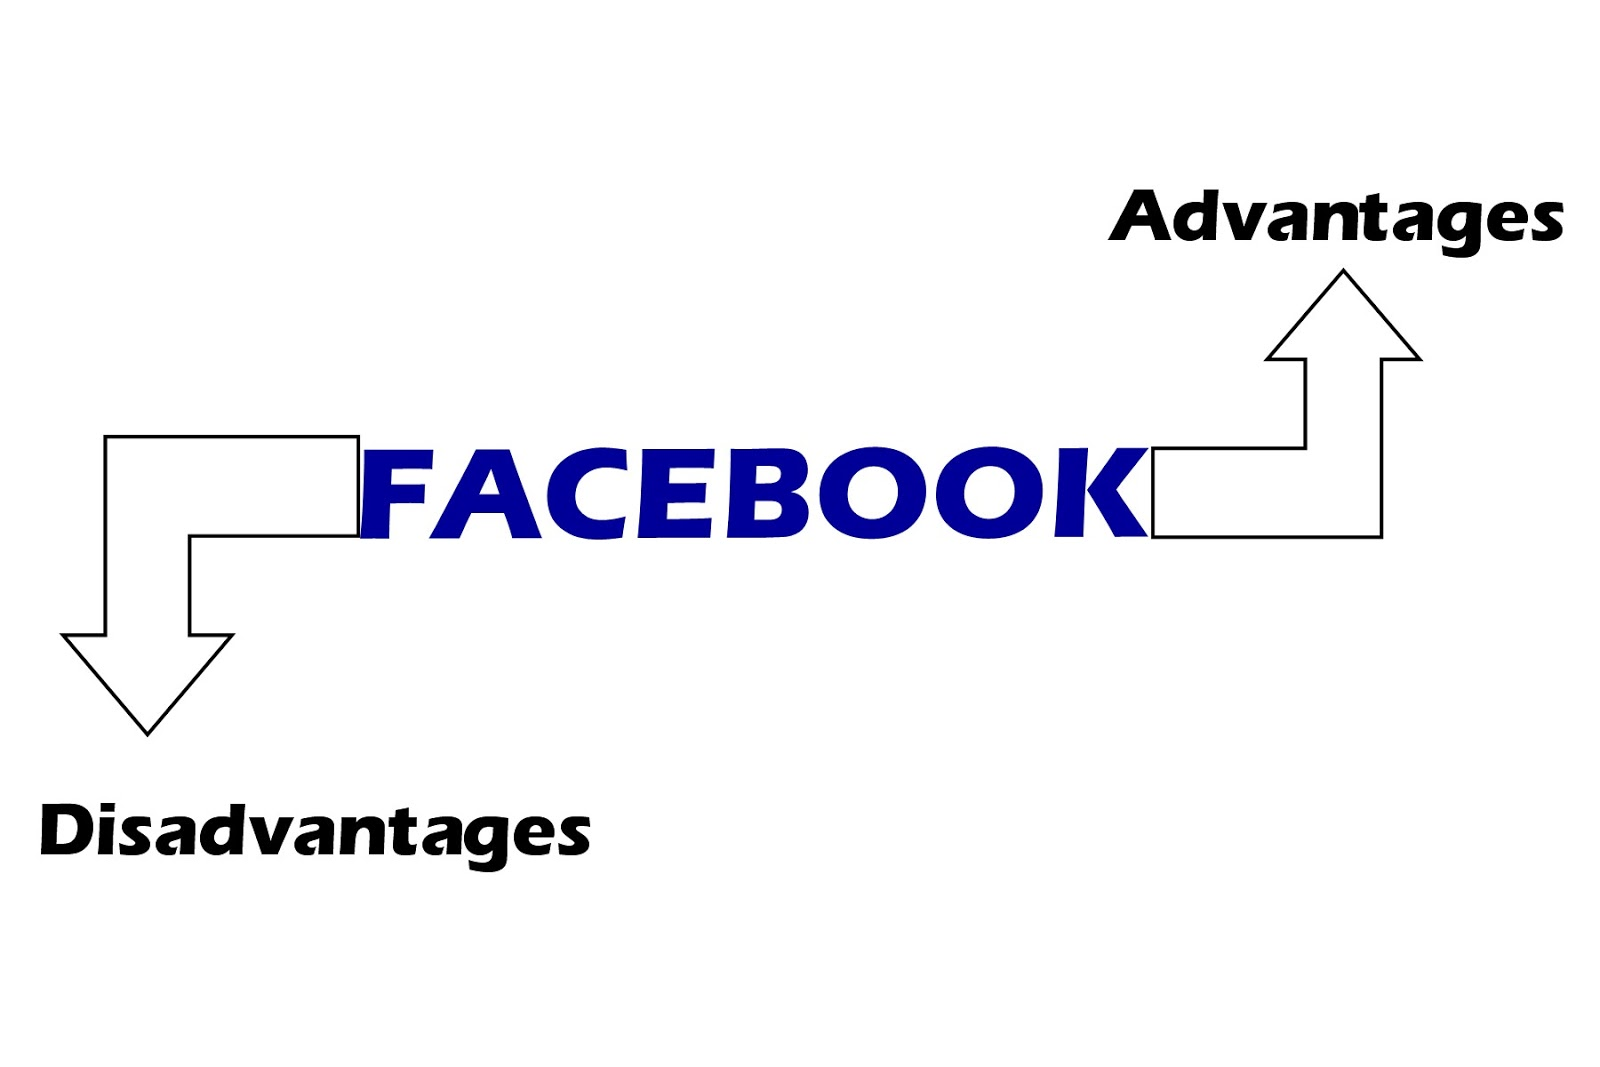 essay on social networking advantages and disadvantages